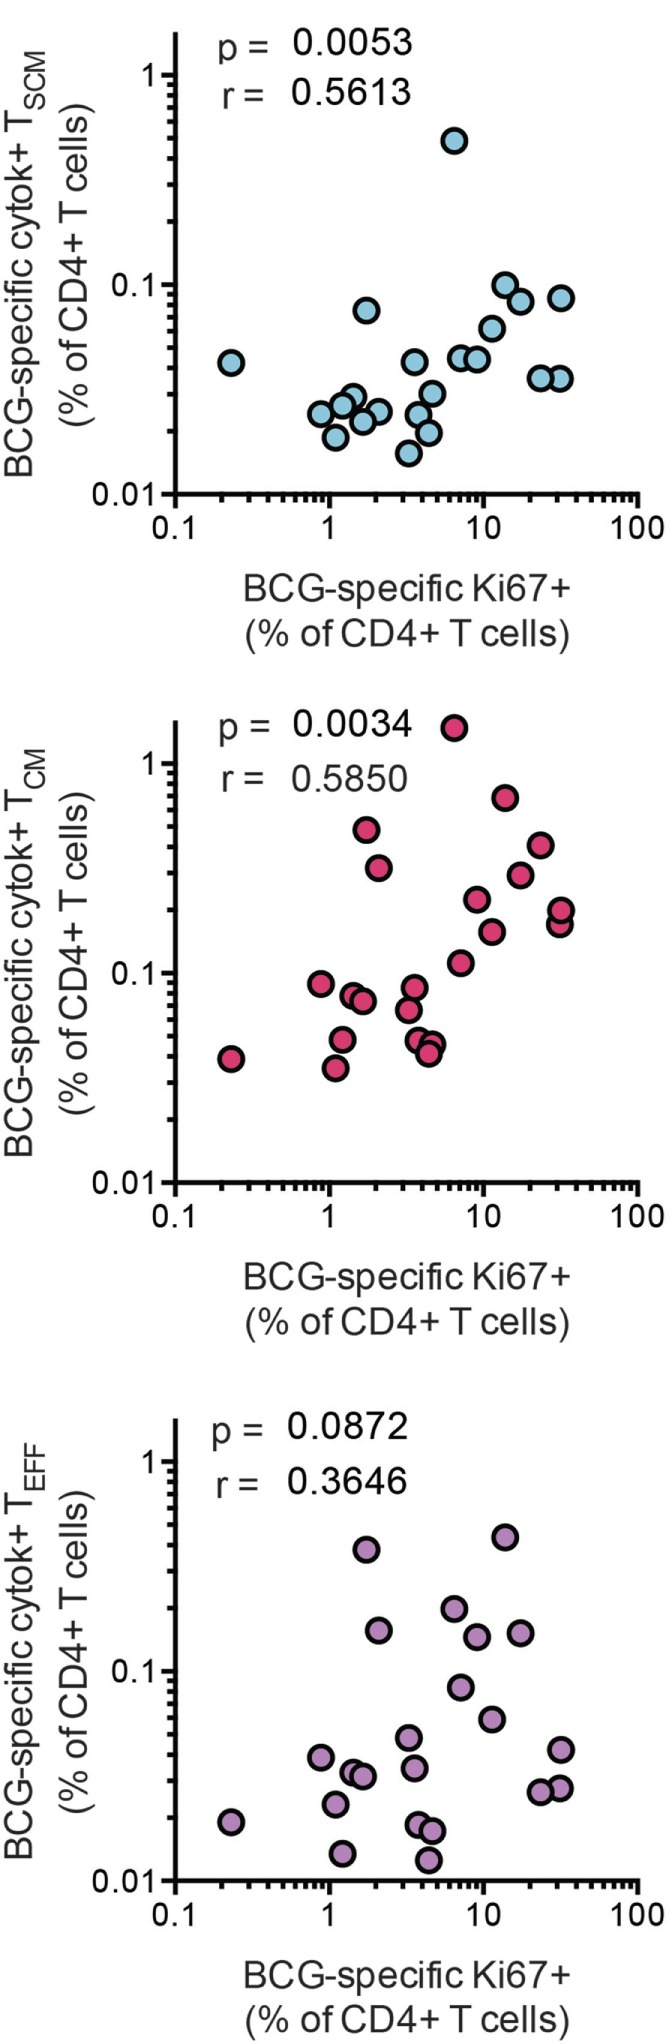 Bacillus Calmette–Guerin (BCG)-specific T SCM are associated with long-term CD4 + T cell proliferation after vaccination. Whole blood from 1-year-old infants ( n = 23) was stimulated with BCG for 12 h to measure the frequencies of cytokine-producing T SCM (CD45RA + , CCR7 + ), T CM (CD45RA − , CCR7 + ), and T EFF (CD45RA − , CCR7 − ). In parallel, whole blood was stimulated with BCG for 7 days, and the frequency of proliferating CD4 + cells was assessed by upregulation of Ki-67. Correlations between the frequencies of BCG-specific CD4 + memory T cell subsets and those of proliferating CD4 + T cells were calculated by Spearman test 10 months postvaccination.